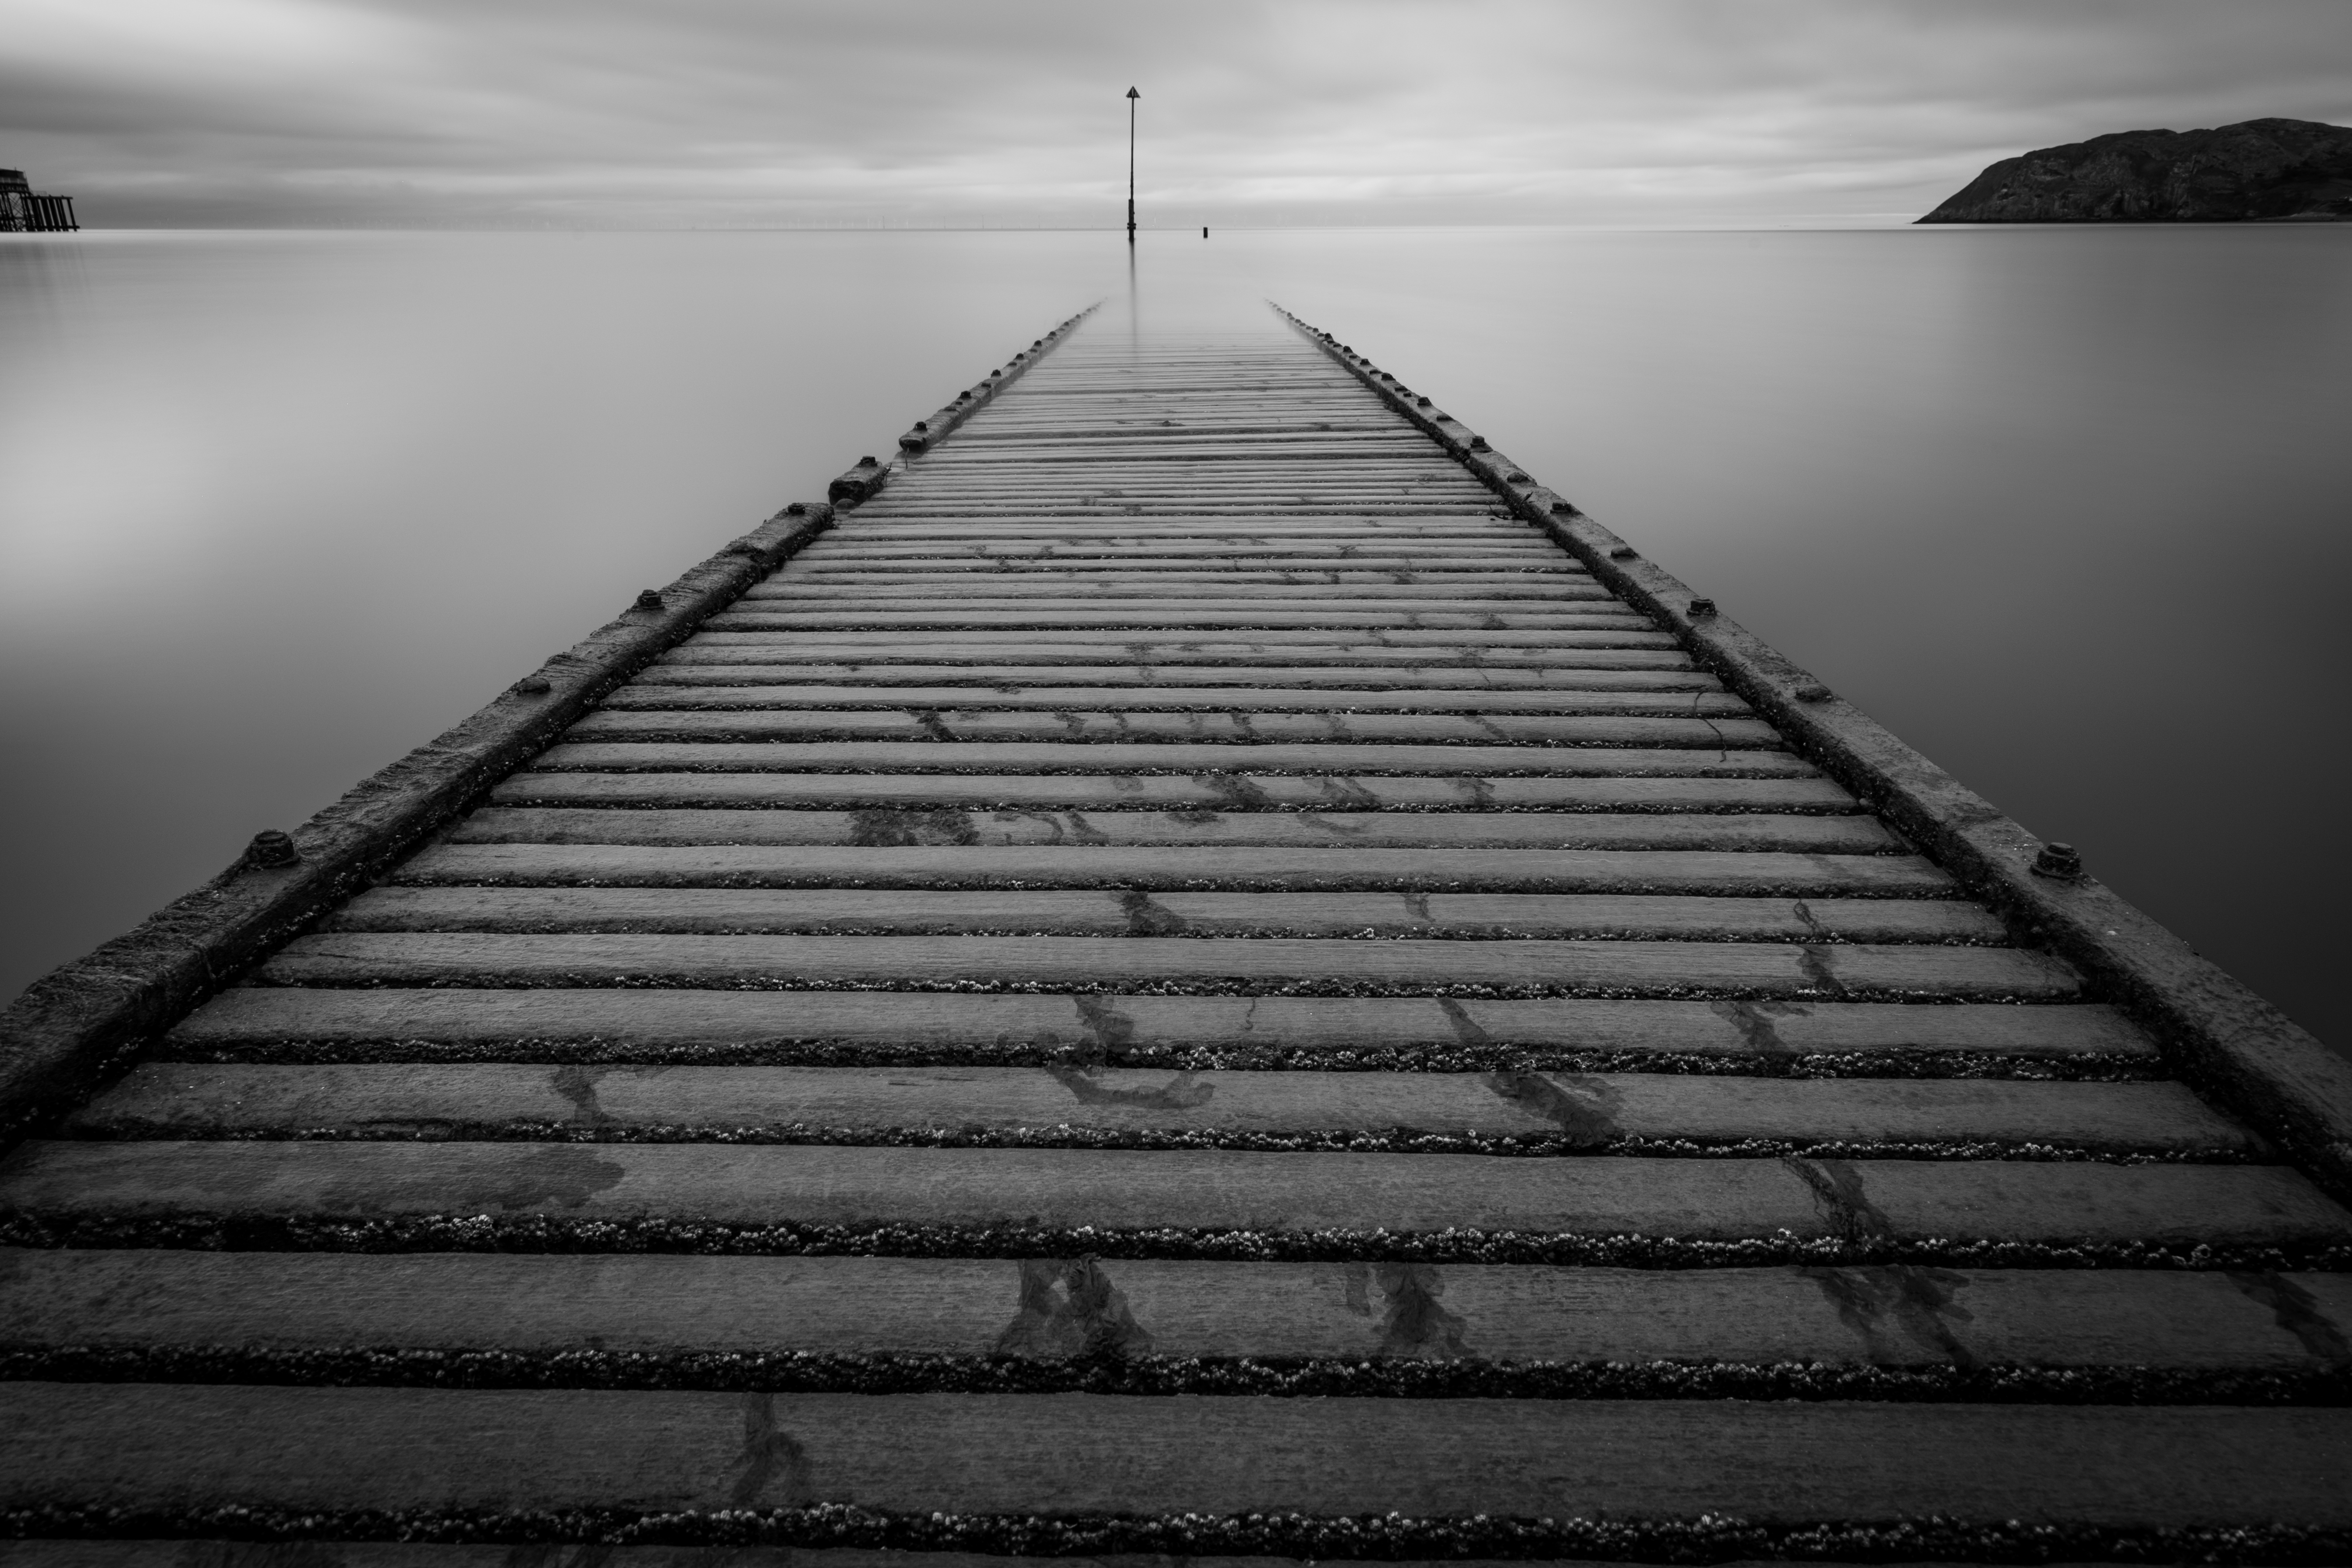 A long exposure of boardwalk in Llandudno leading out to perfectly still water in the distance.